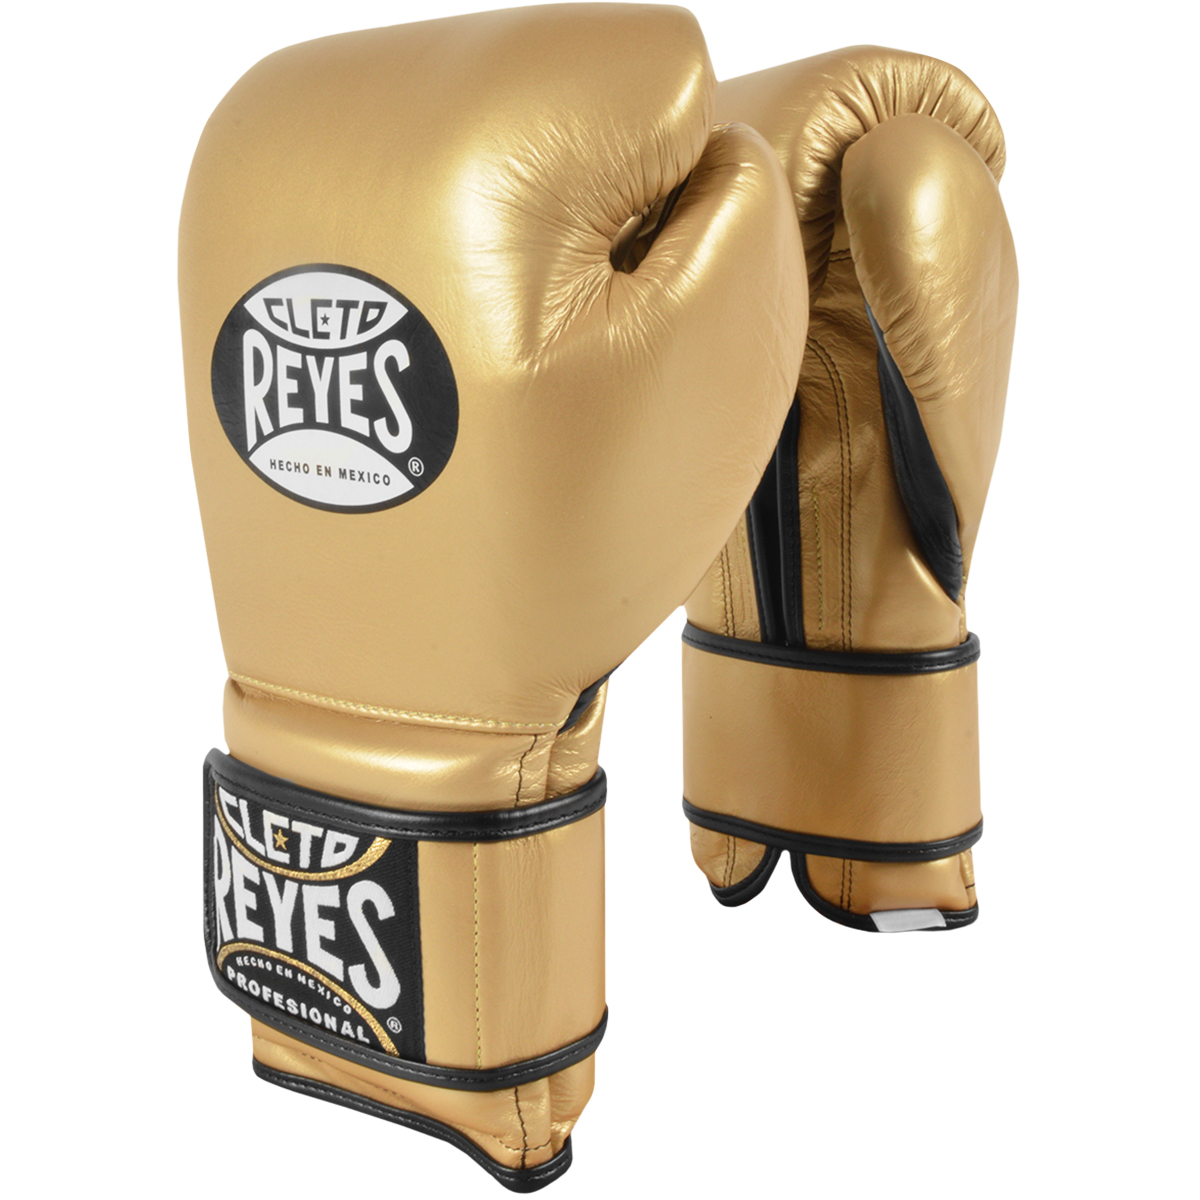 Cleto Reyes Hook and Loop Leather Training Boxing Gloves Red 16oz